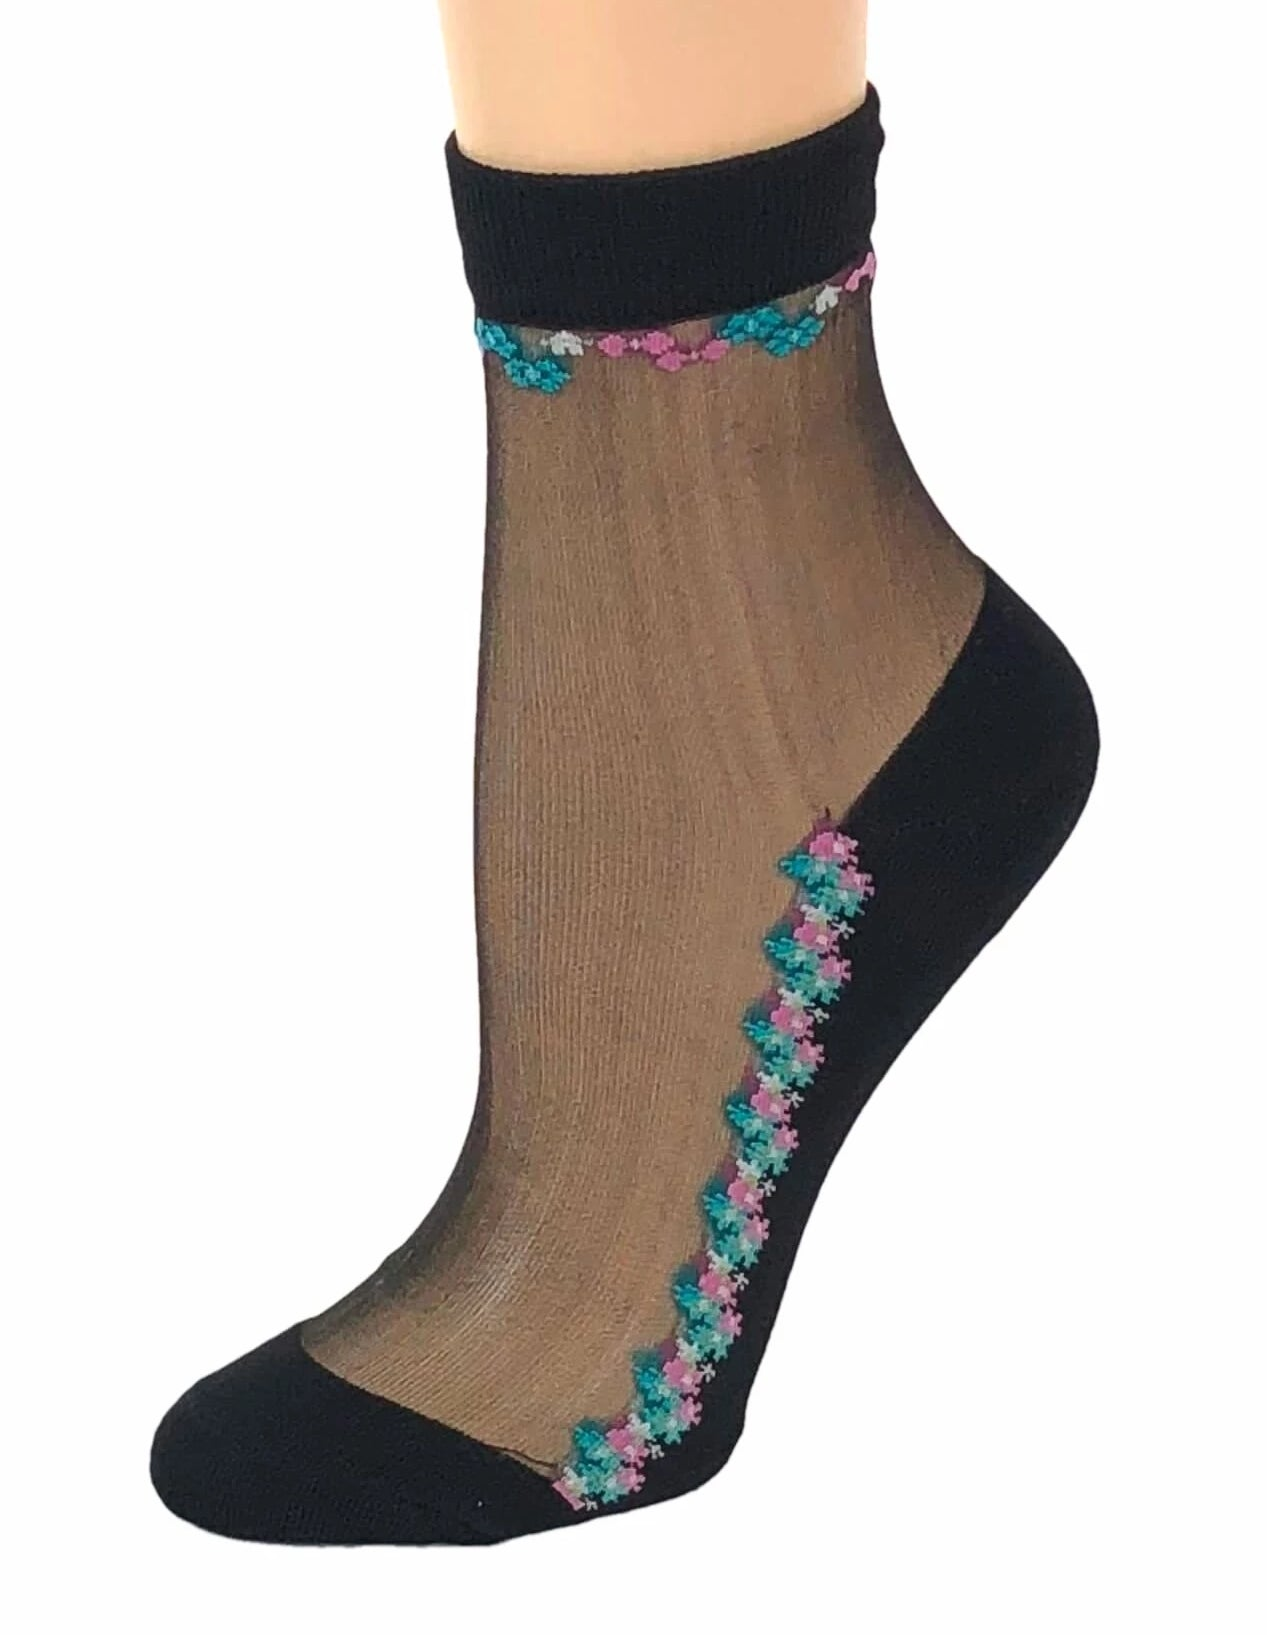 Mini Floral Sheer Socks - Global Trendz Fashion®